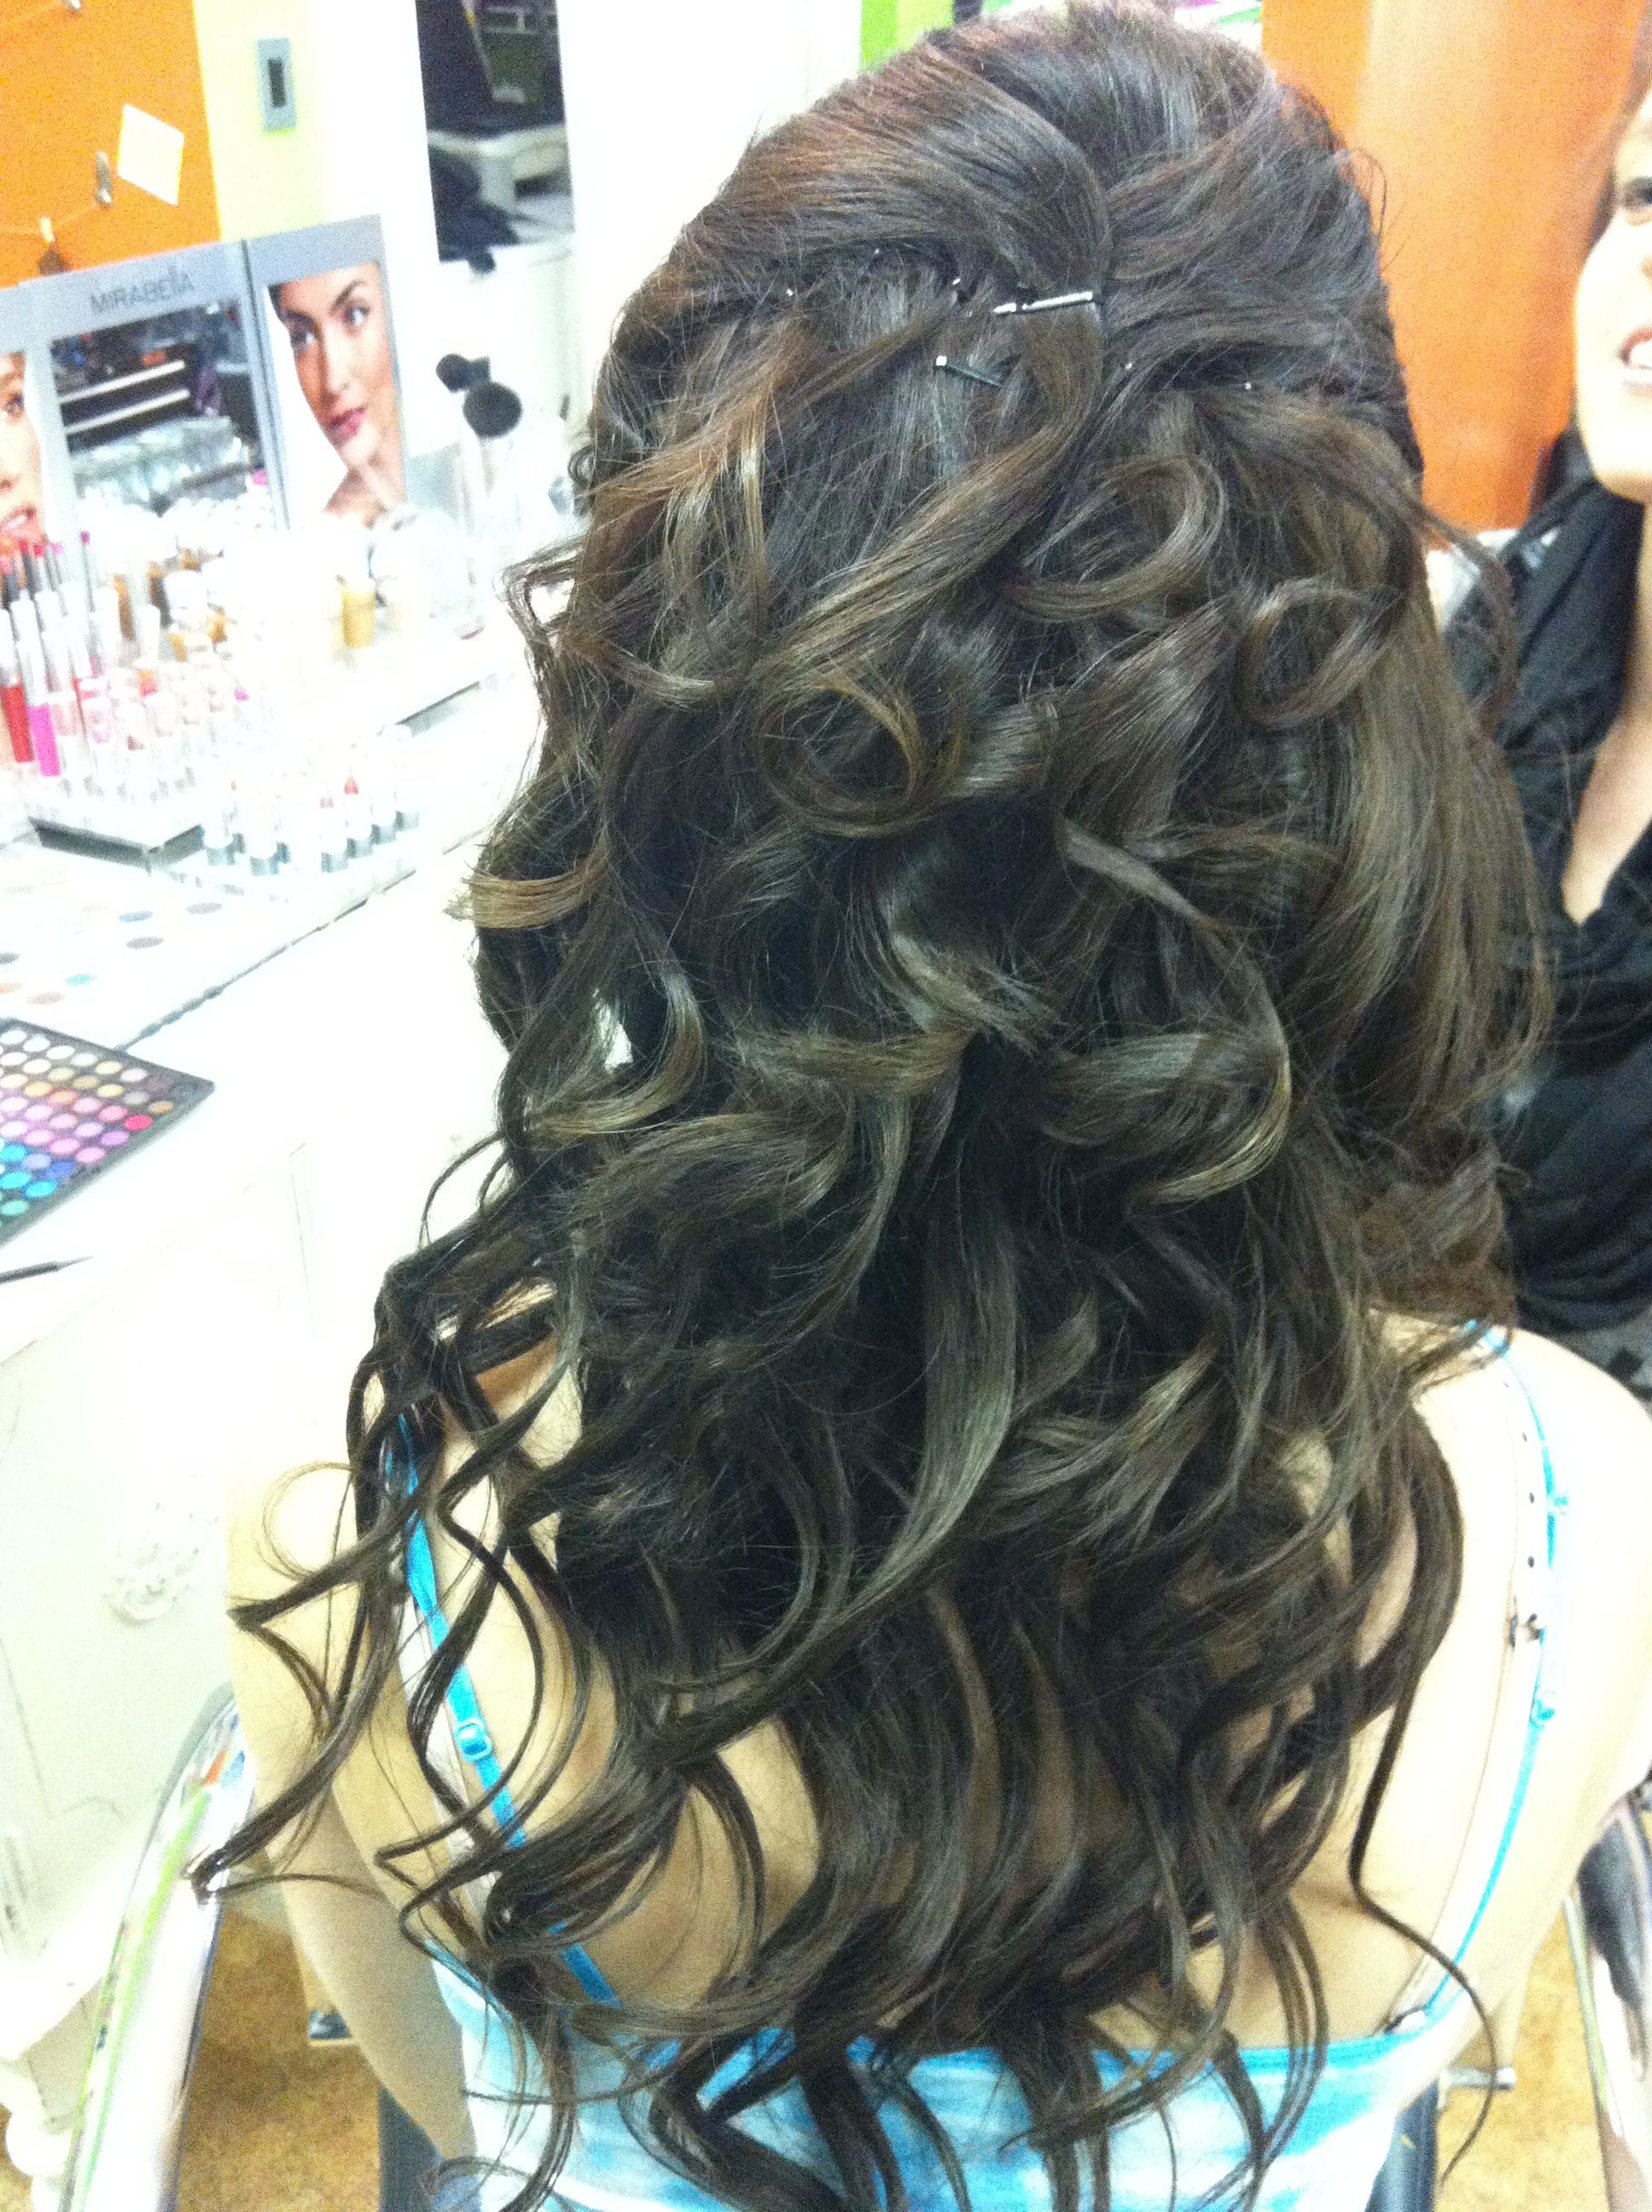 half up down with curls :)